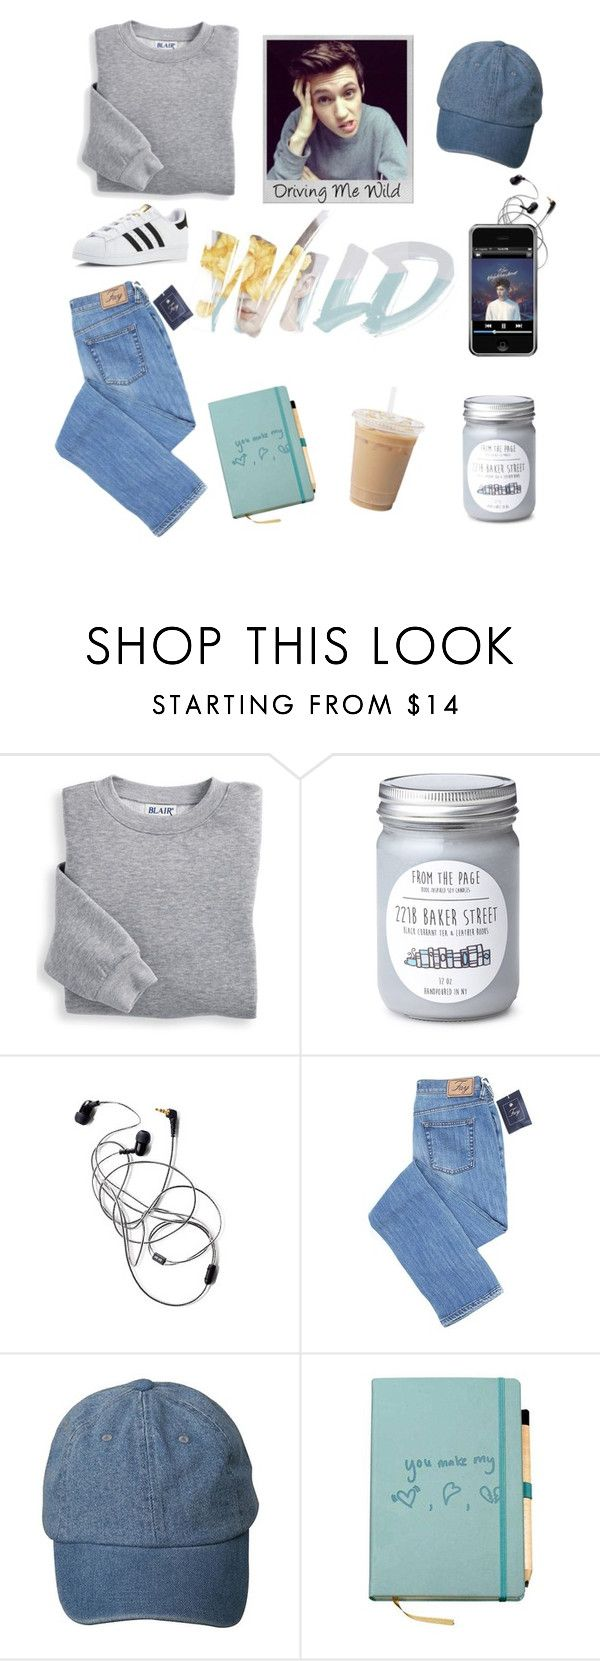 """""""Driving Me Wild"""" by denise-gustin9 on Polyvore featuring Blair, Polaroid and adidas"""